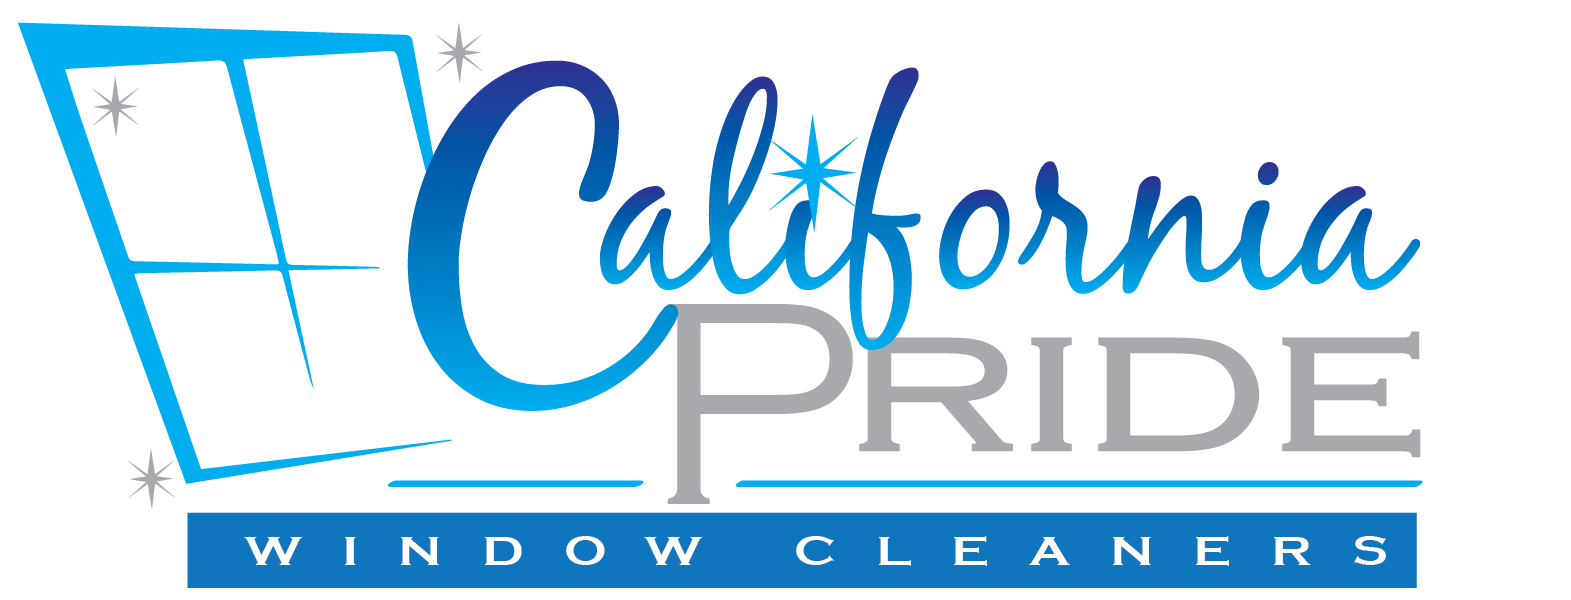 california pride window cleaners logo california pride window rh californiapridewindowcleaners com window cleaning logo pics window cleaning logo ideas